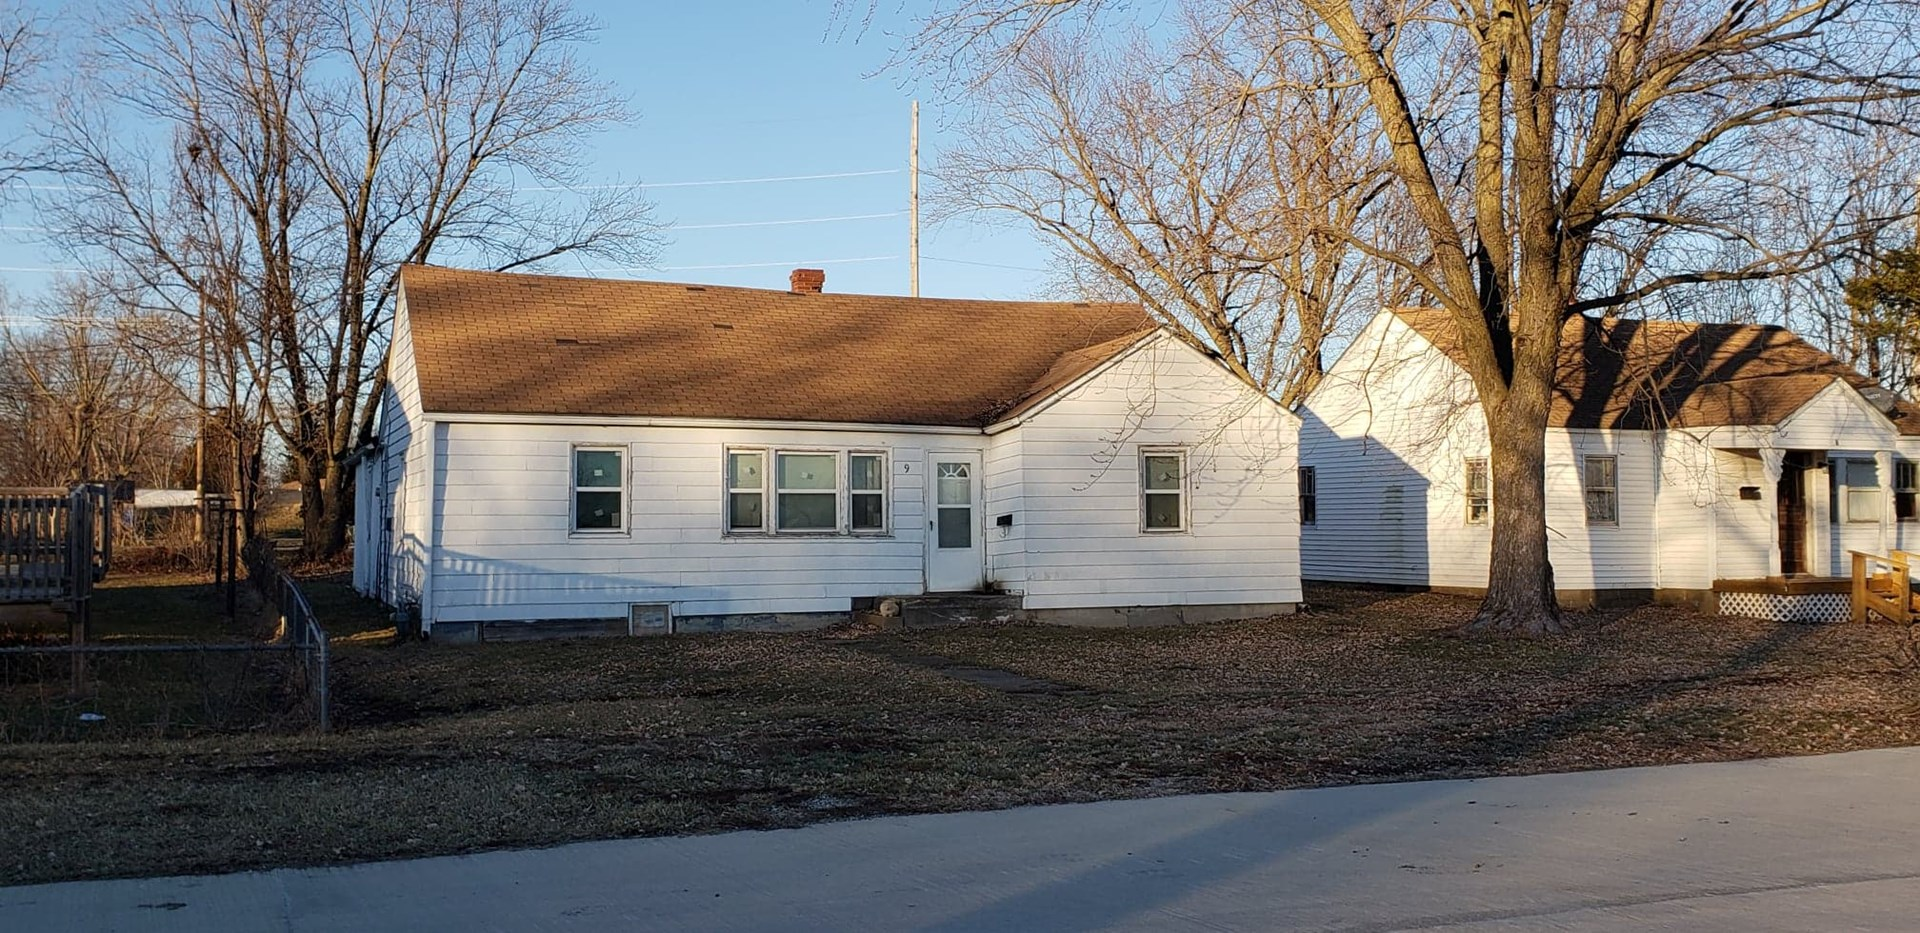 Home In Town For Sale, Investment Potential, Chillicothe, MO